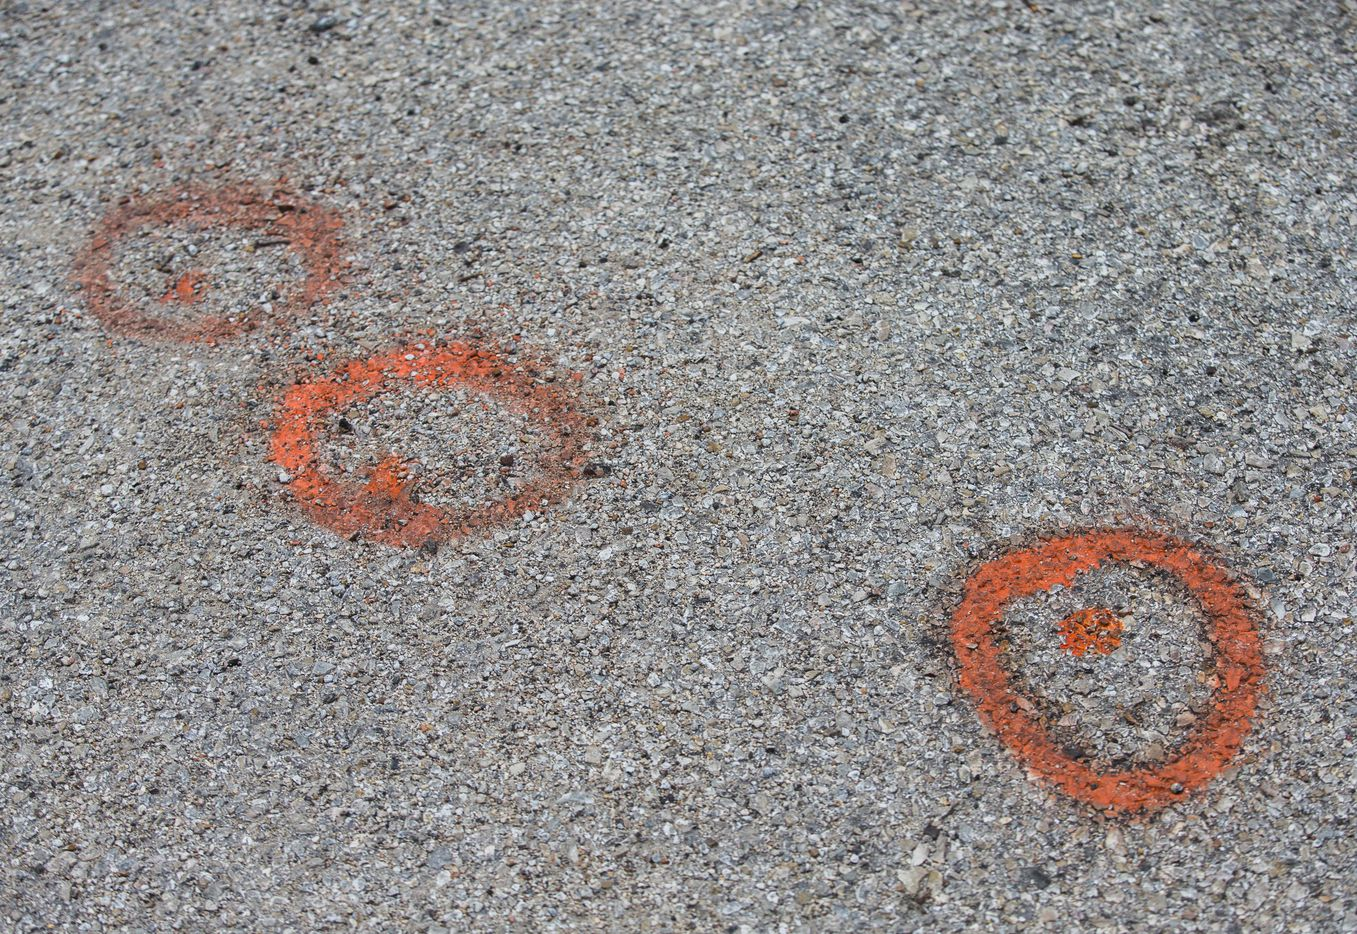 Orange spray painted circles mark the location where four shell casings were found.